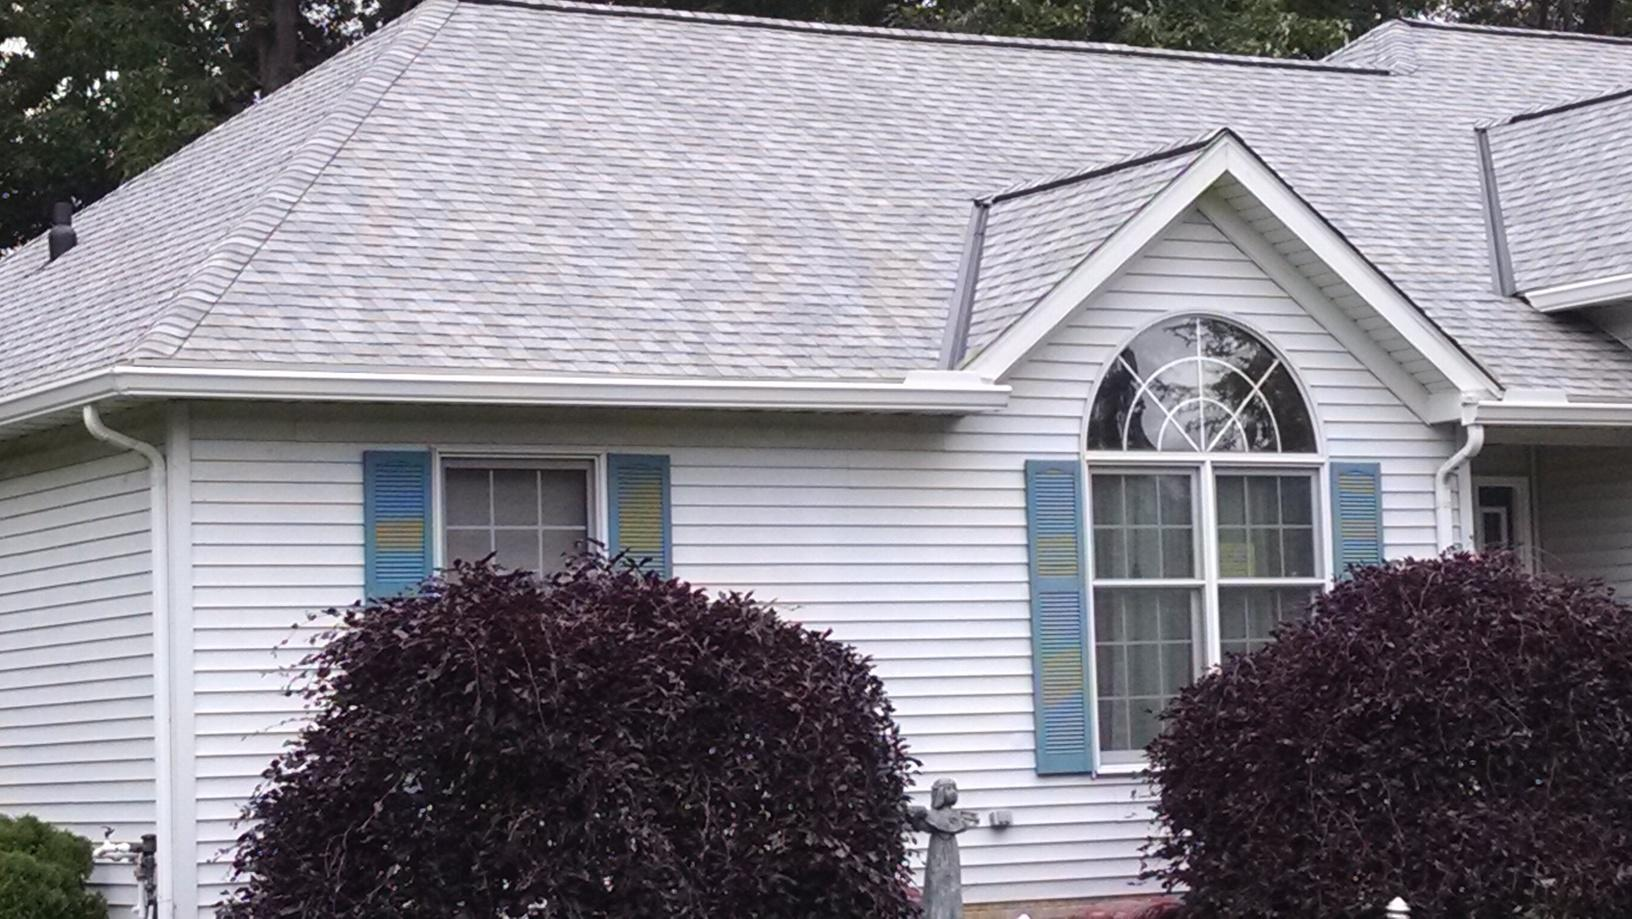 Mentor Roof & Gutter Replacement - After Photo